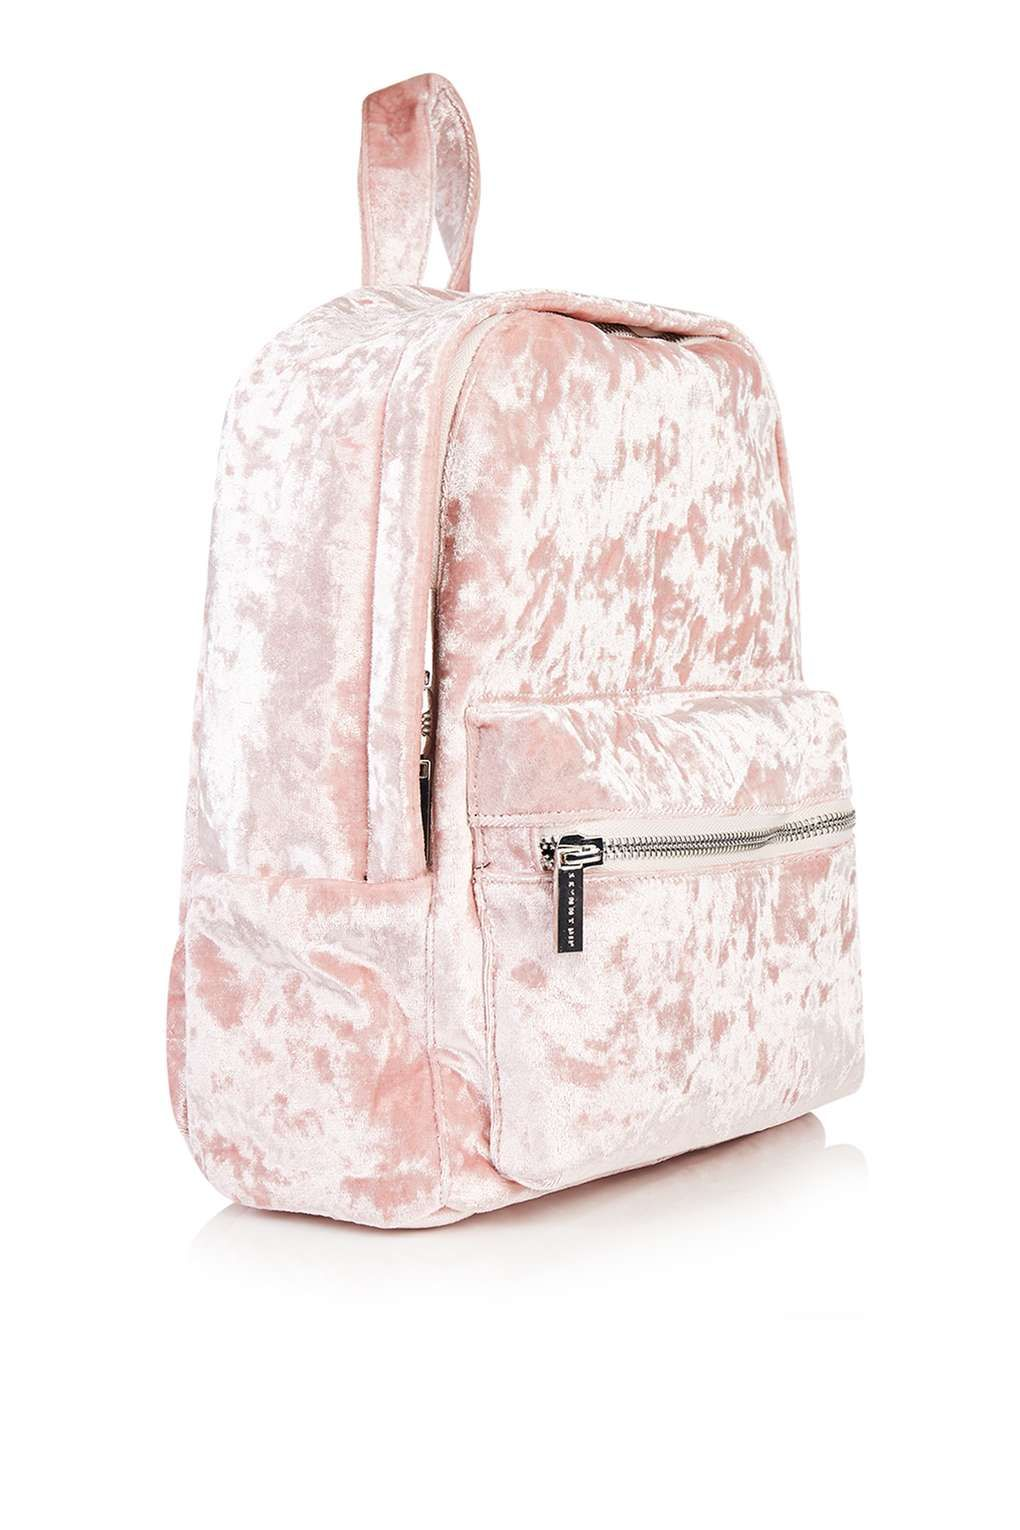 e0018867f98 Pink Velvet Mini Backpack by Skinny Dip - New In Bags  amp  Accessories -  New